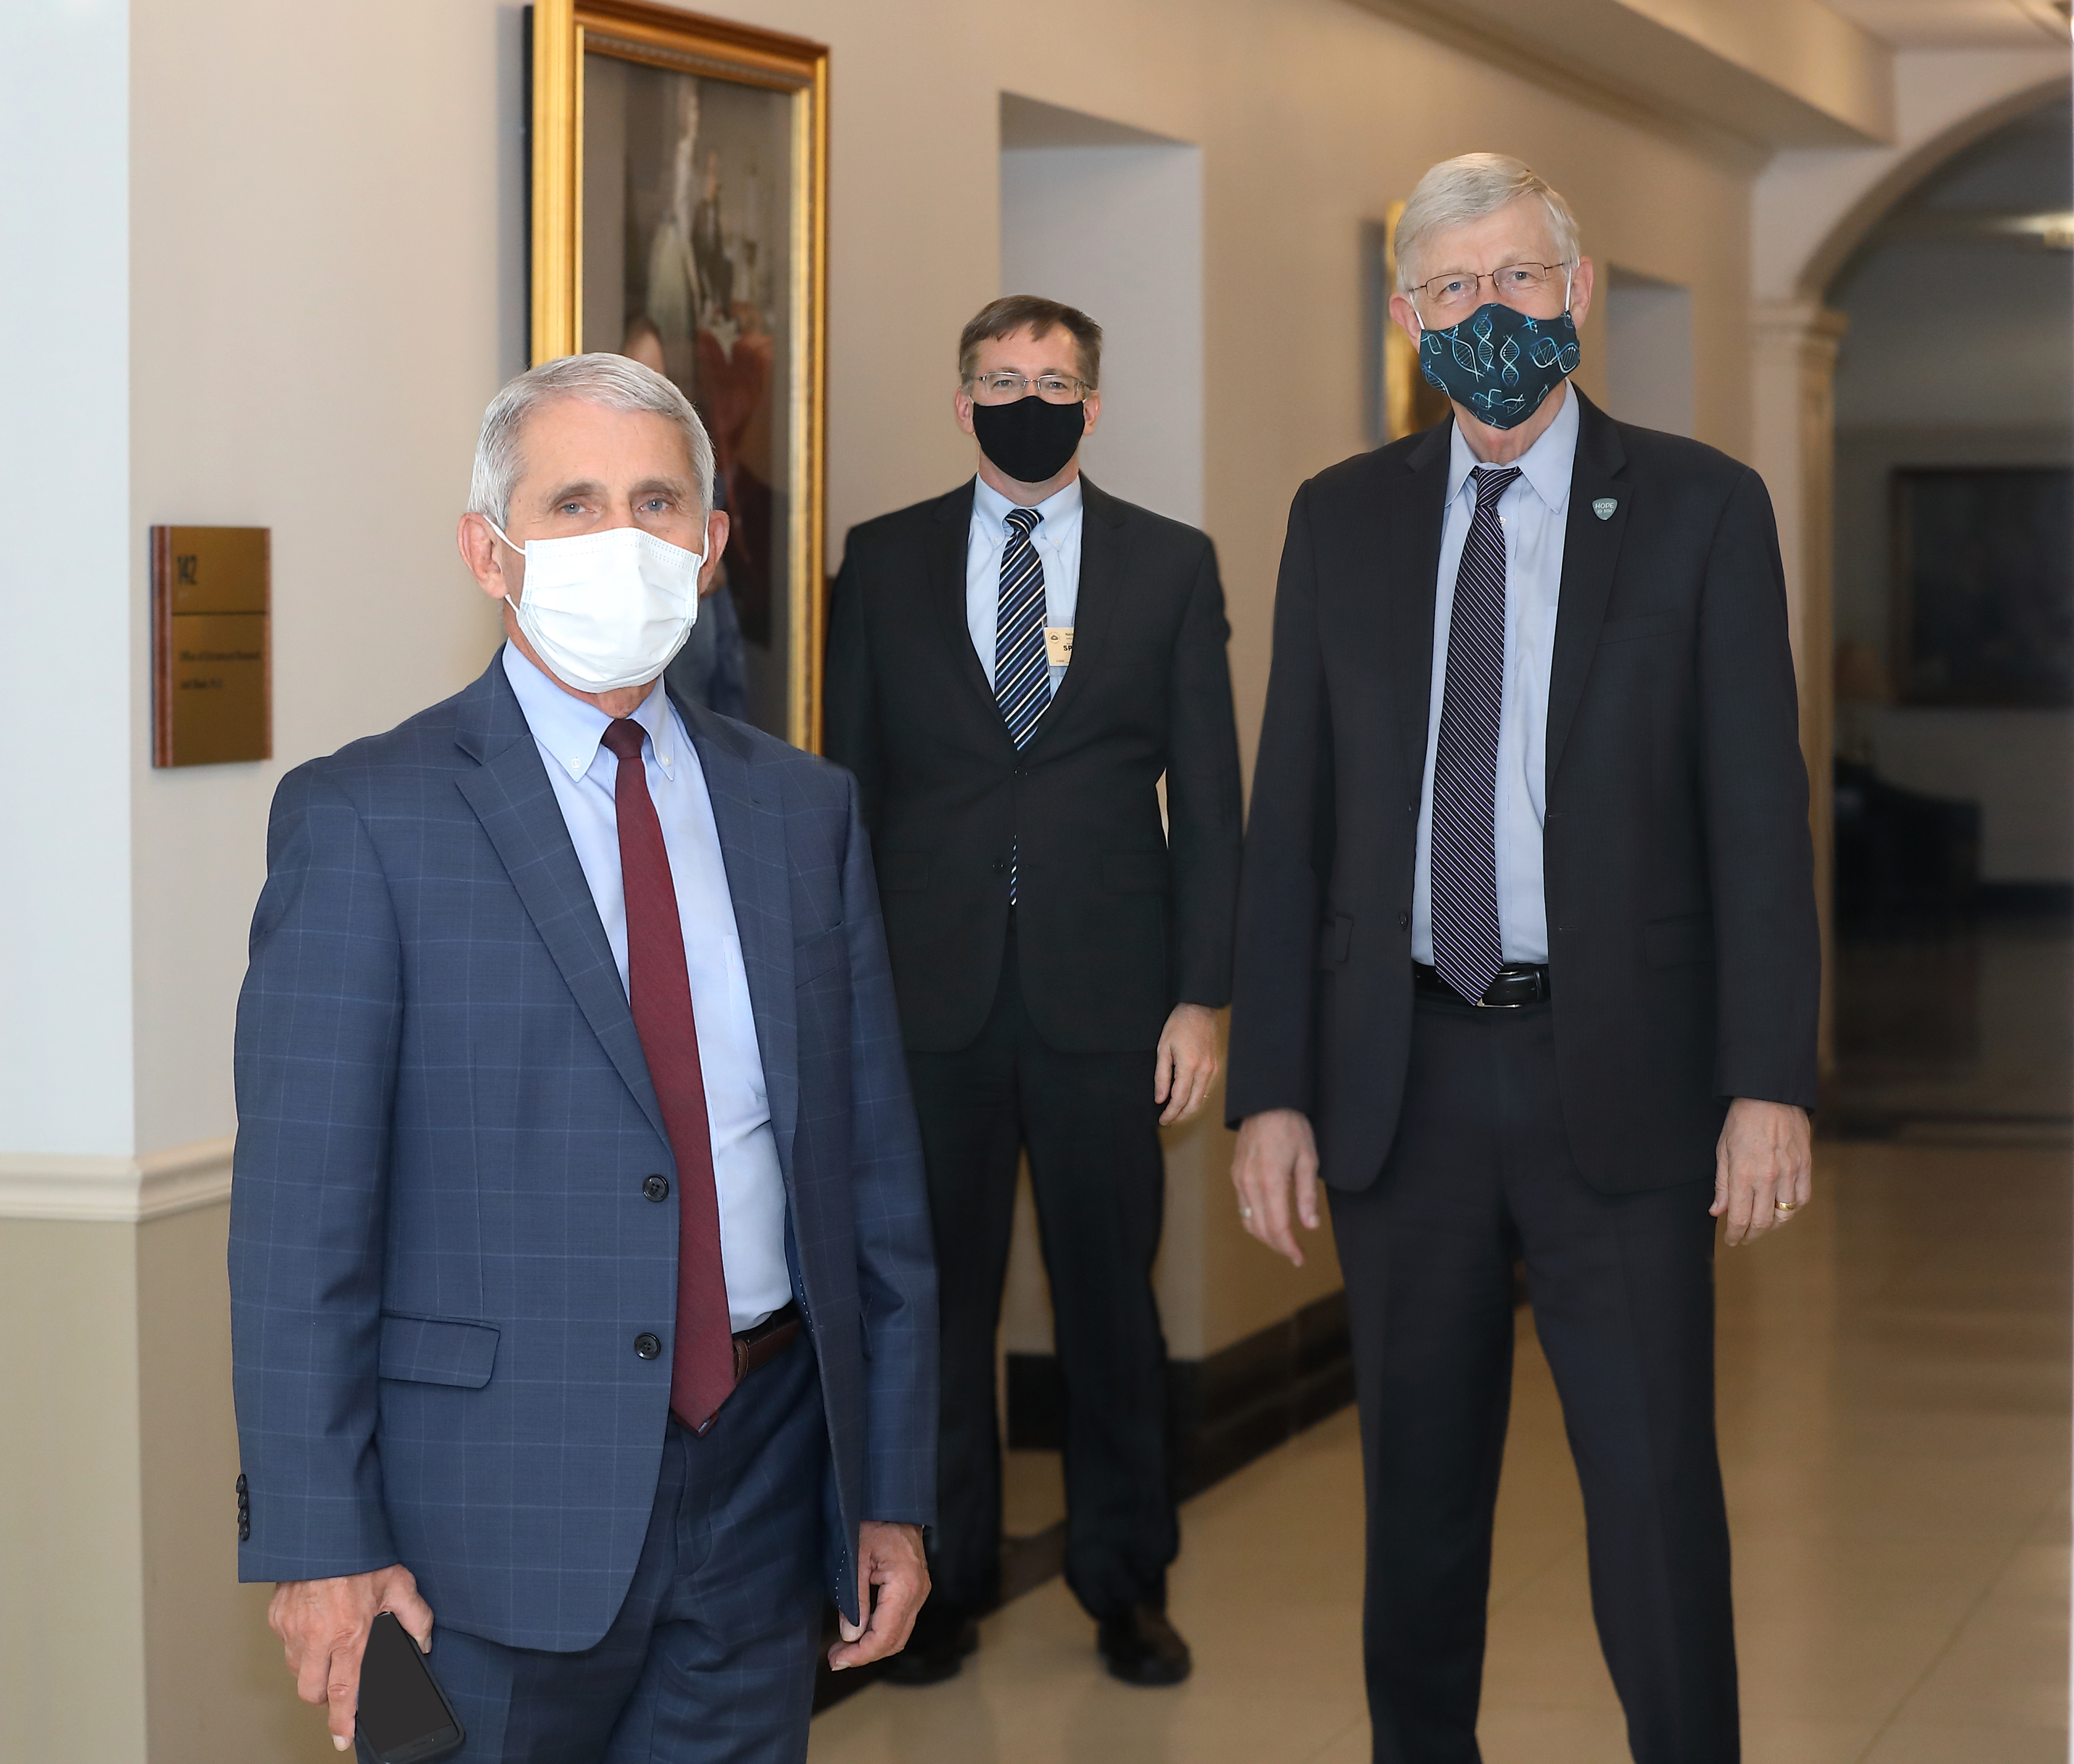 Fauci, Hepburn, and Collins in Hallway